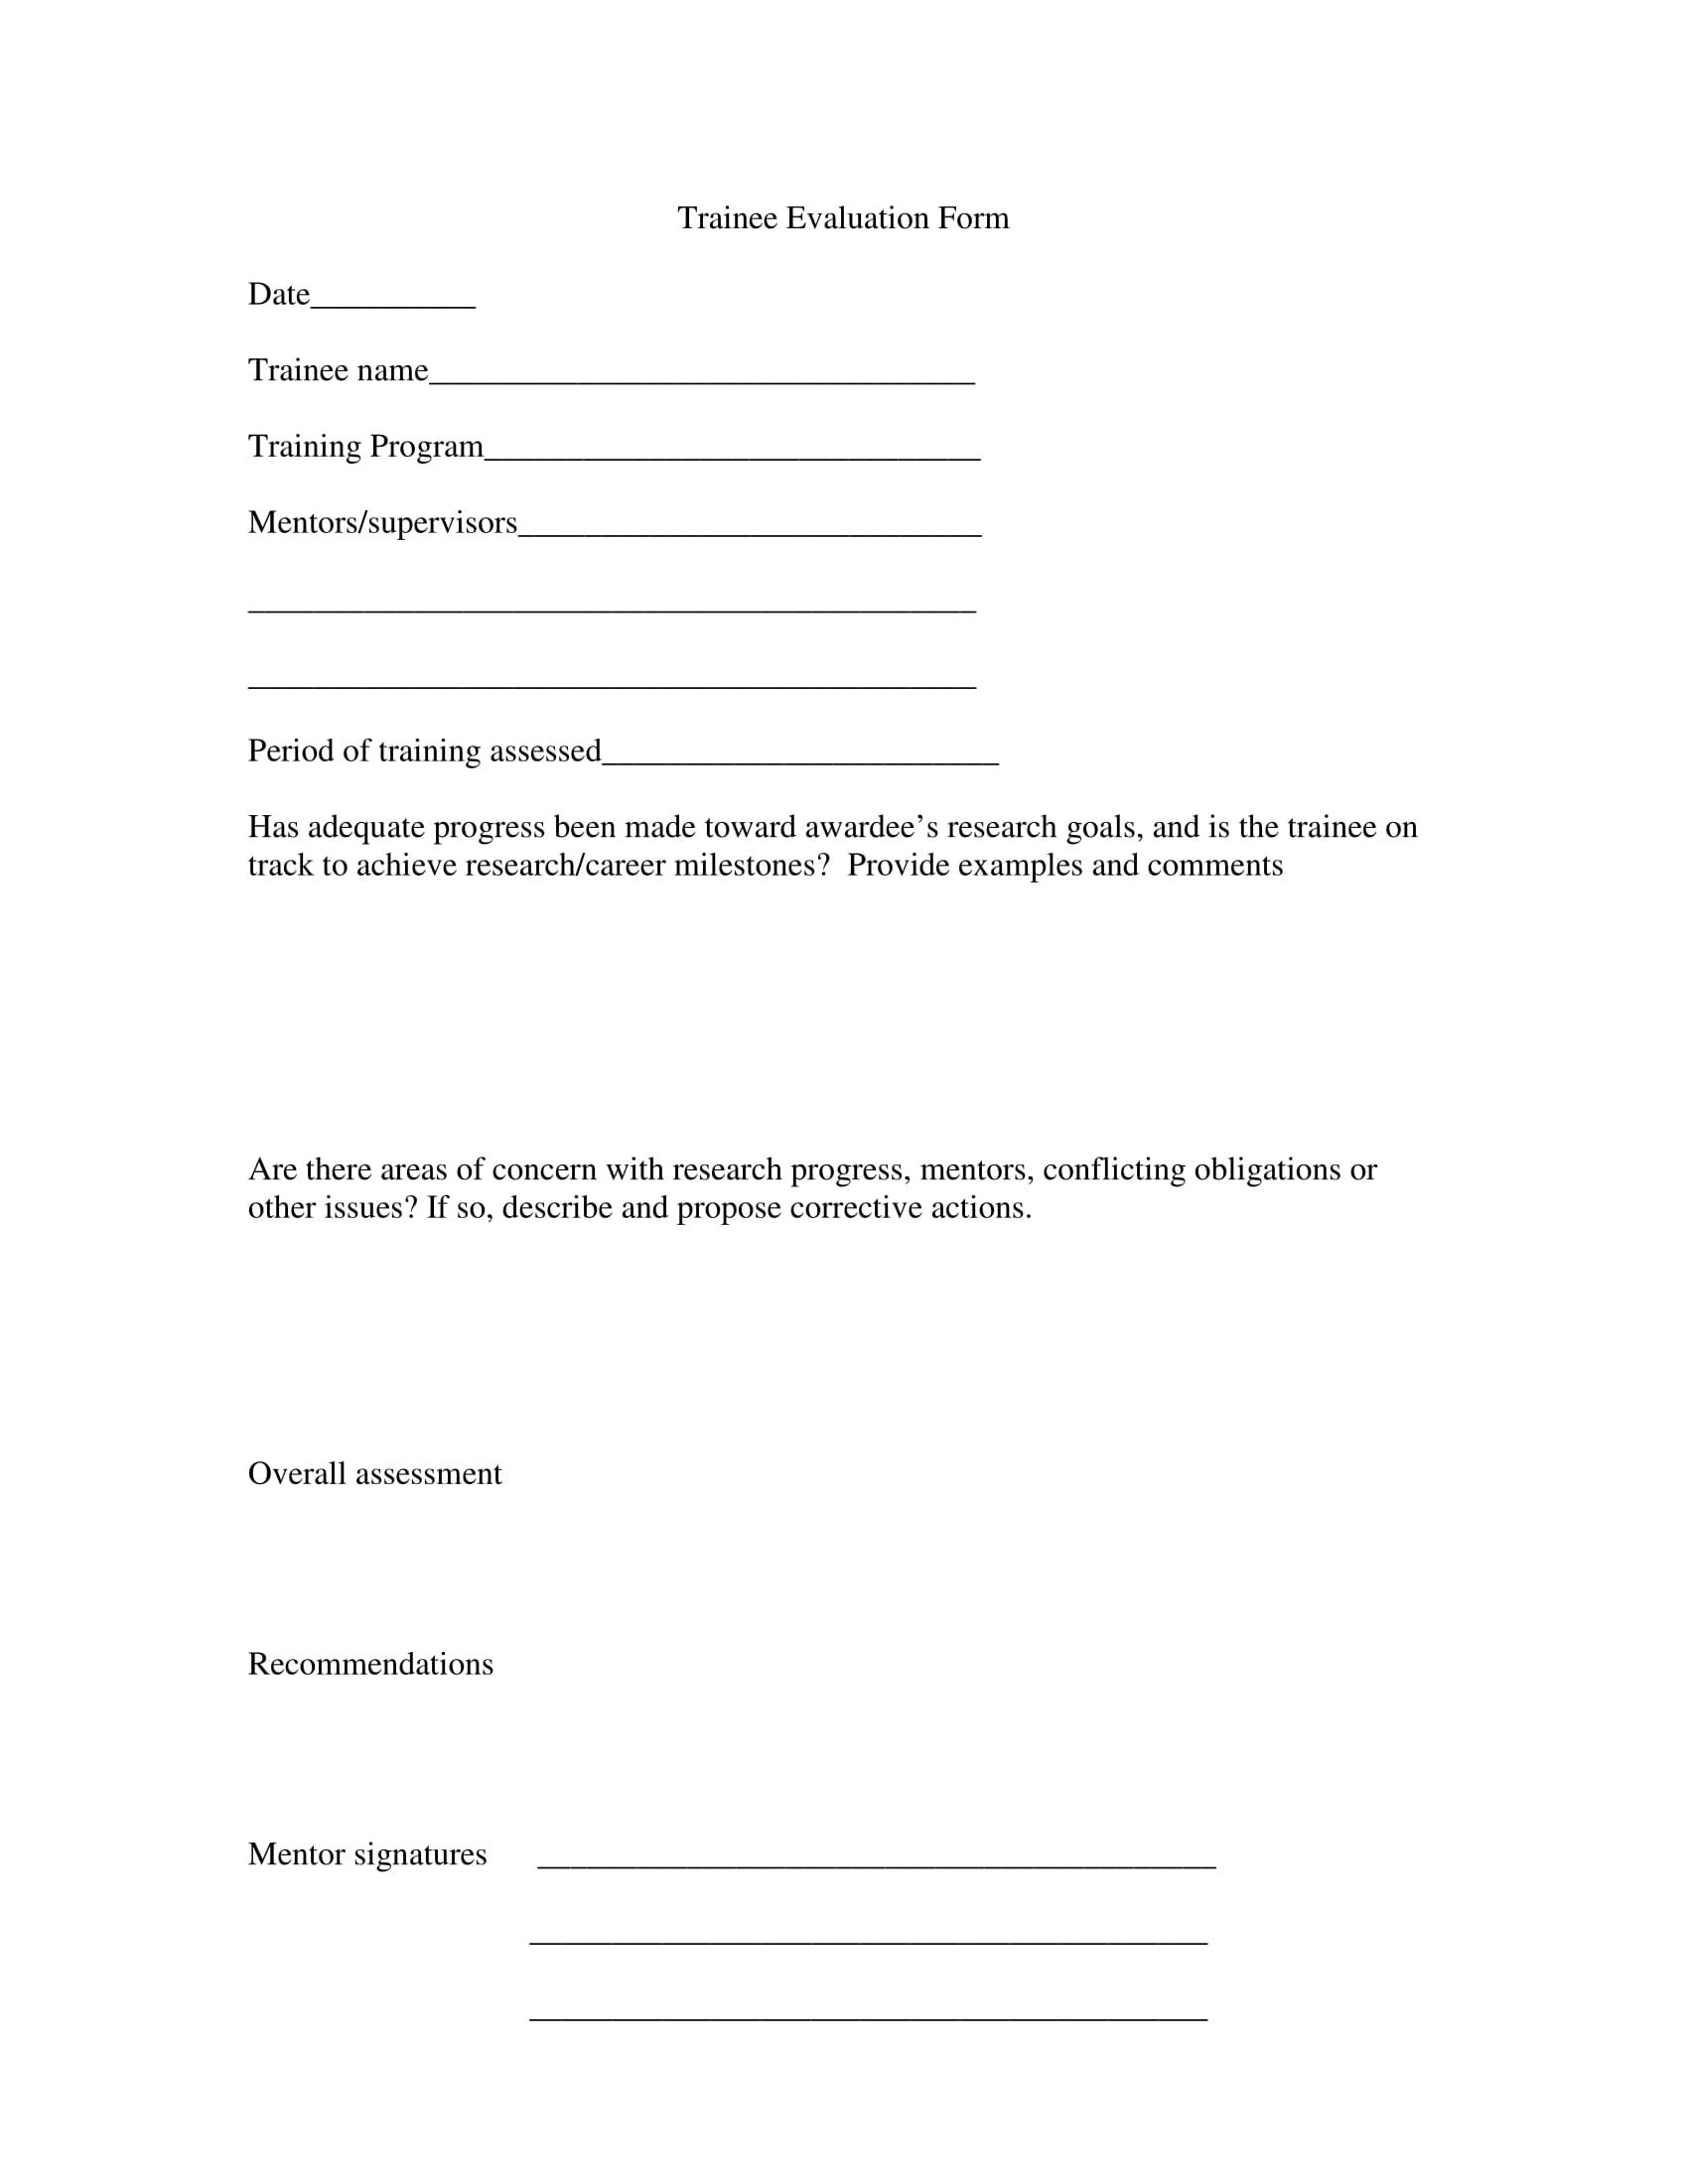 evaluate word document for comments